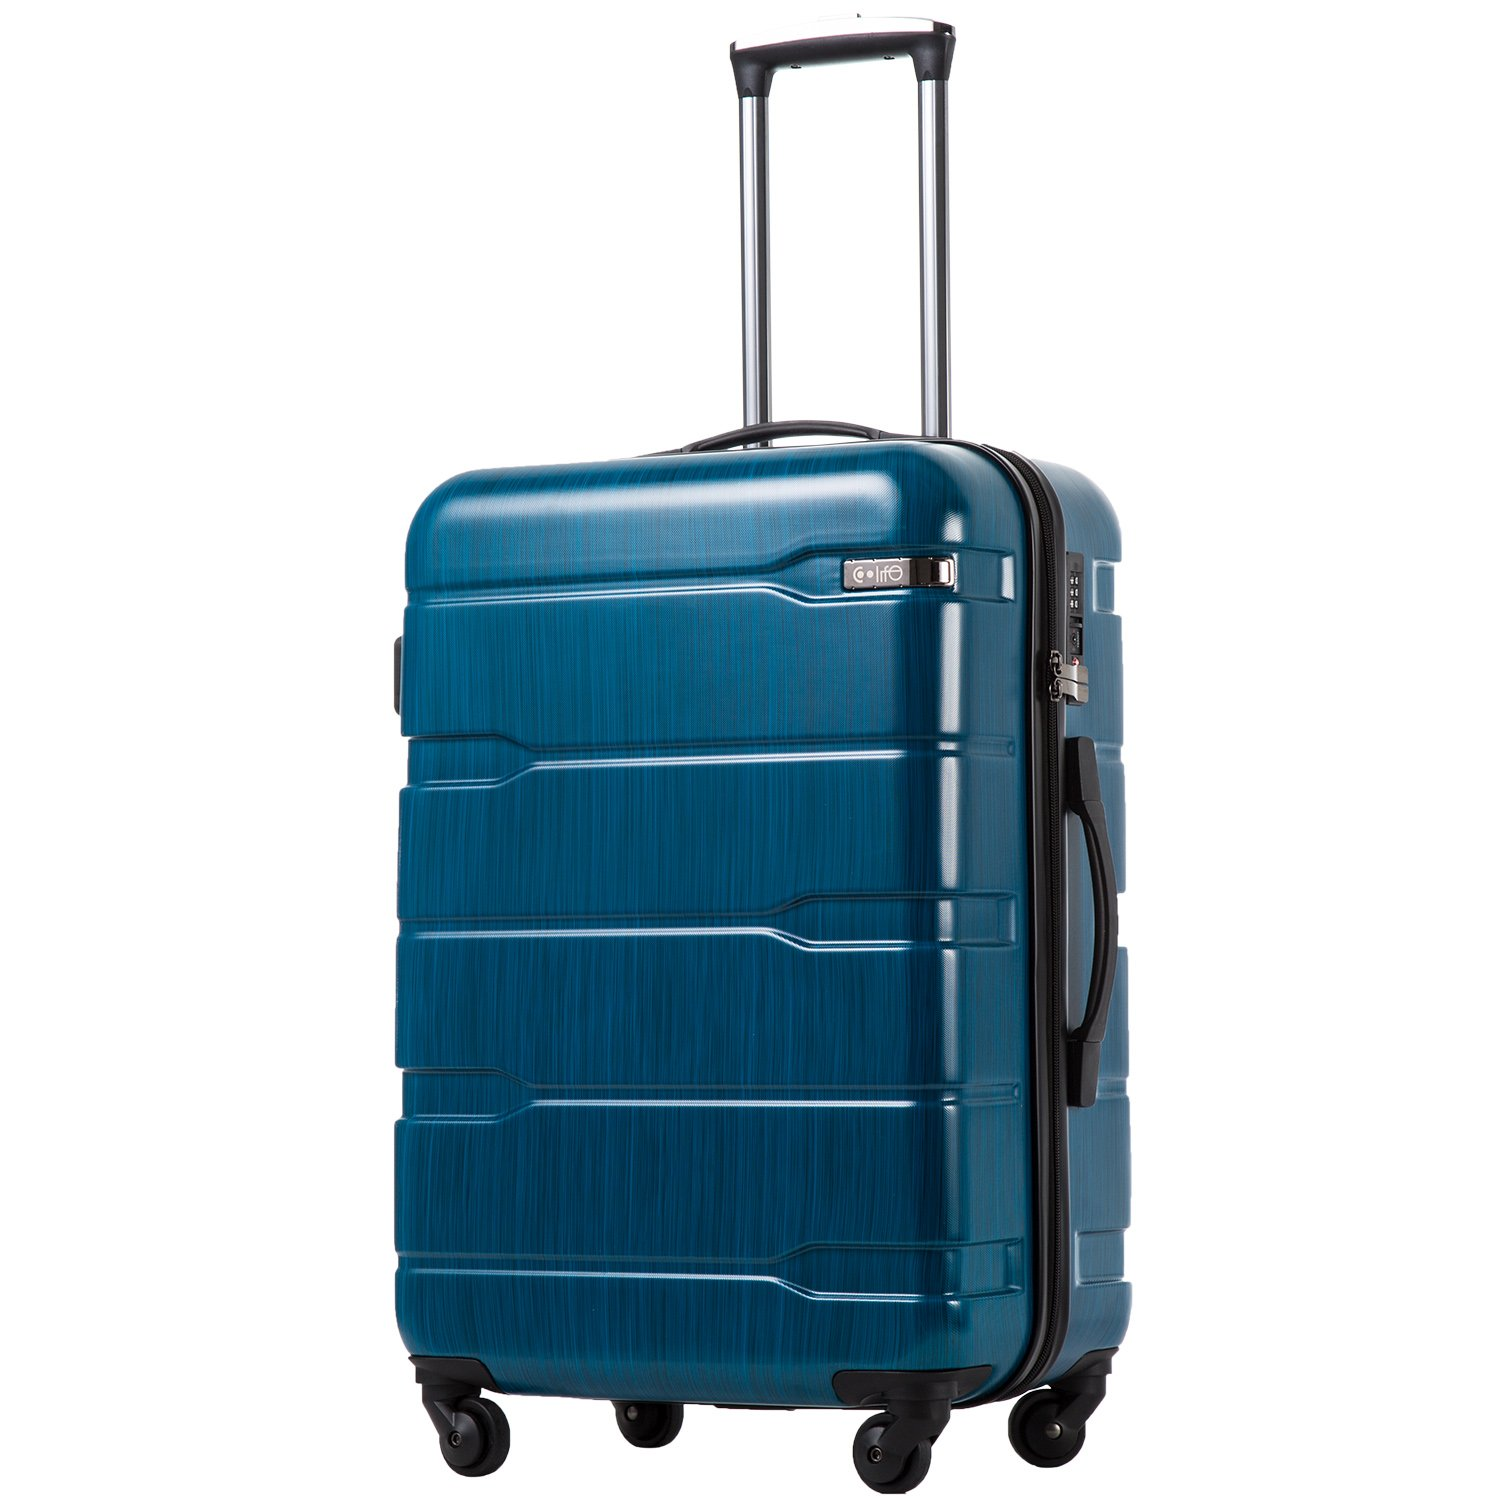 Coolife Luggage Expandable Suitcase PC+ABS Spinner 20in 24in 28in Carry on (Caribbean Blue new, L(28in))